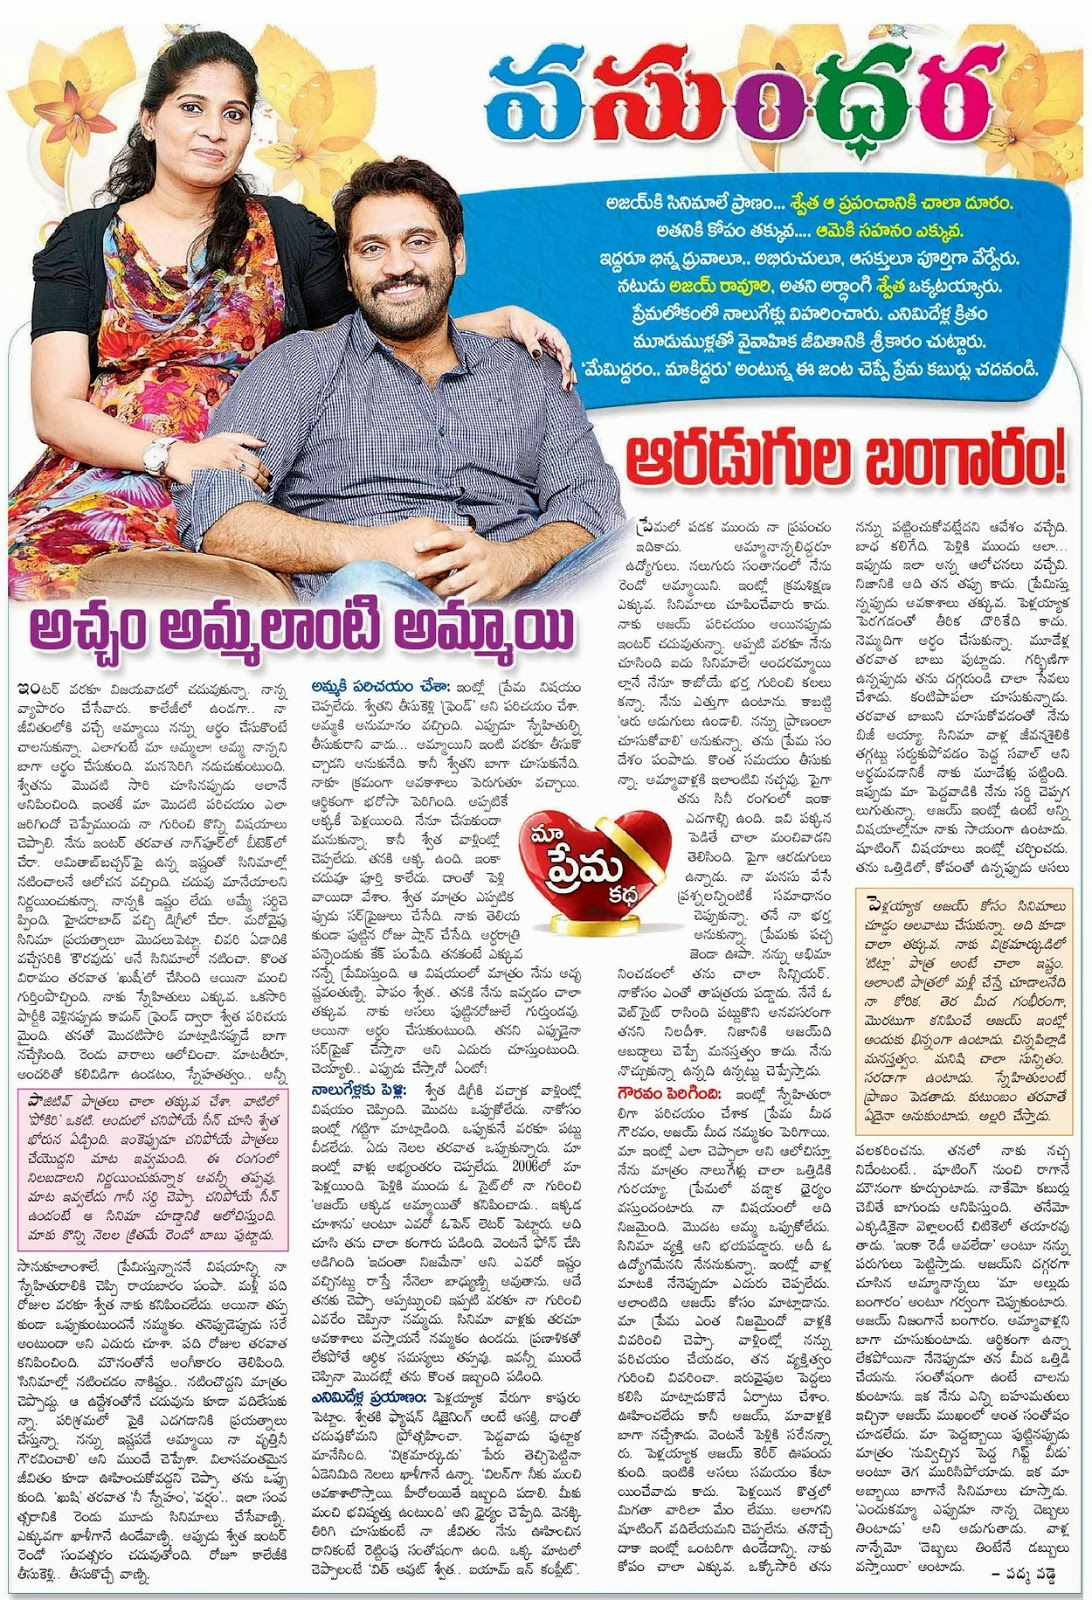 Actor aajay with wife swetha interview in eenadu vasundhara actor aajay with wife swetha interview in eenadu vasundhara kothacinema thecheapjerseys Image collections